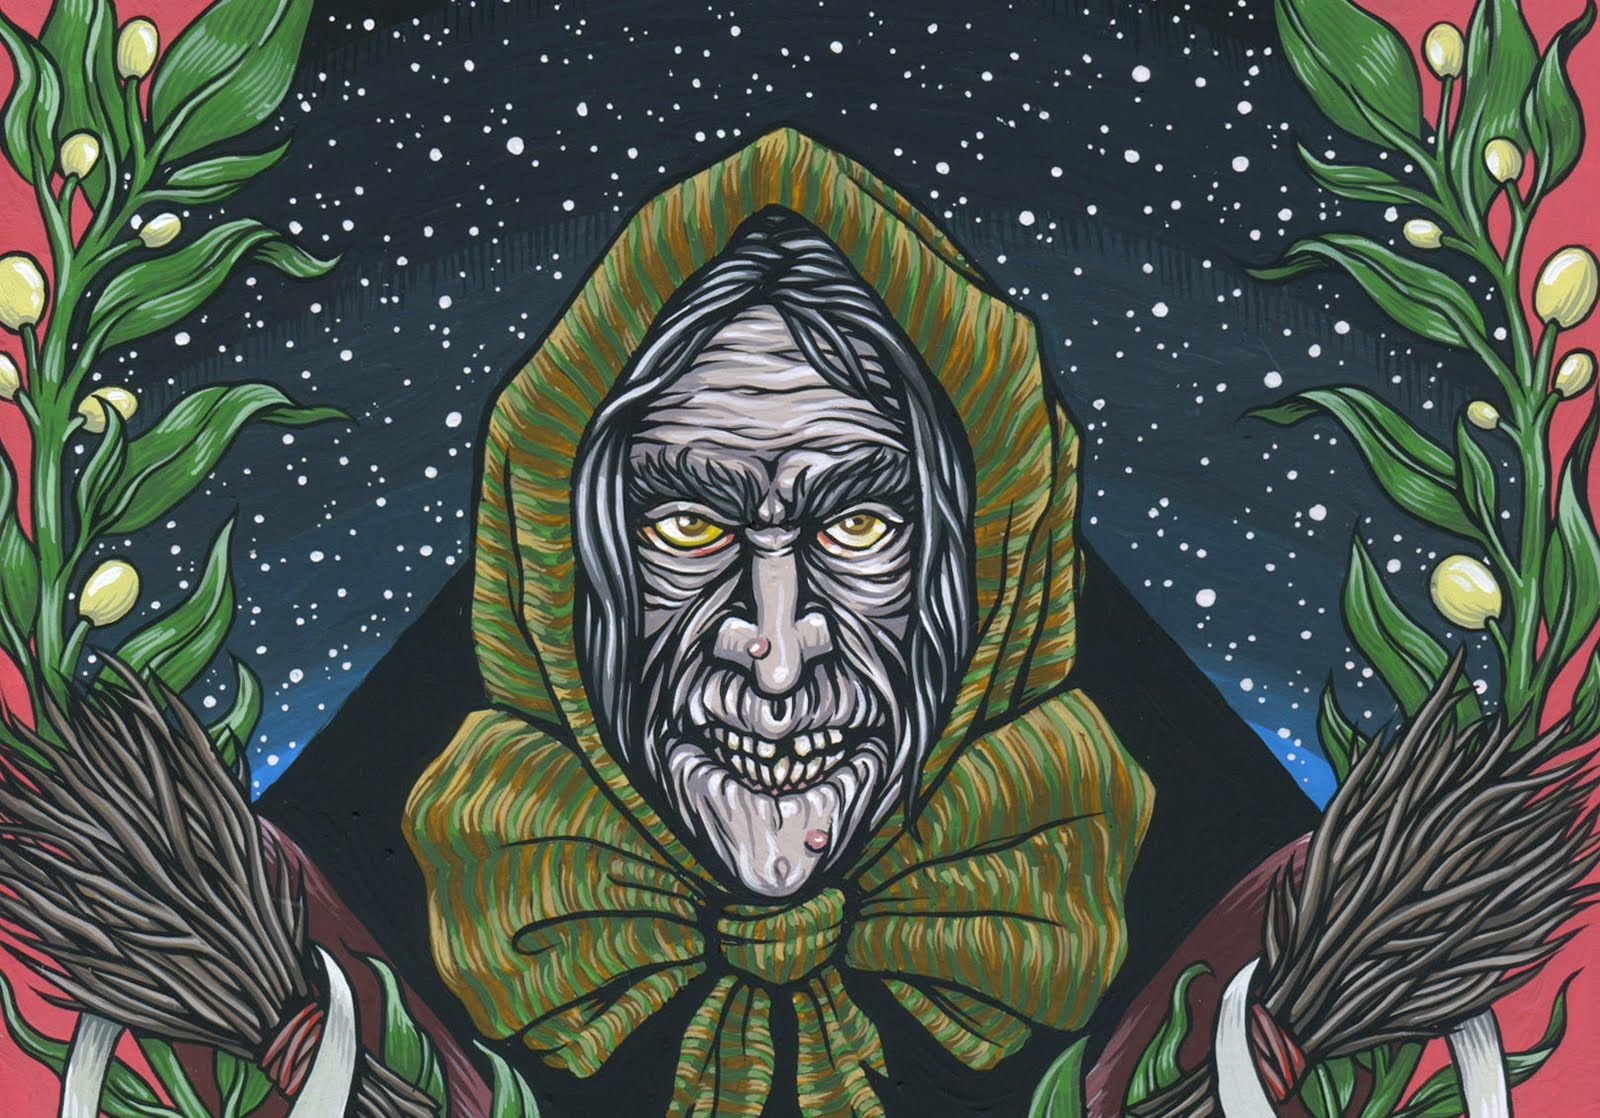 la befana or la strega meaning the witchis a strange italian christmas witch more popular there than santa but performing the same basic function - Italian Christmas Witch